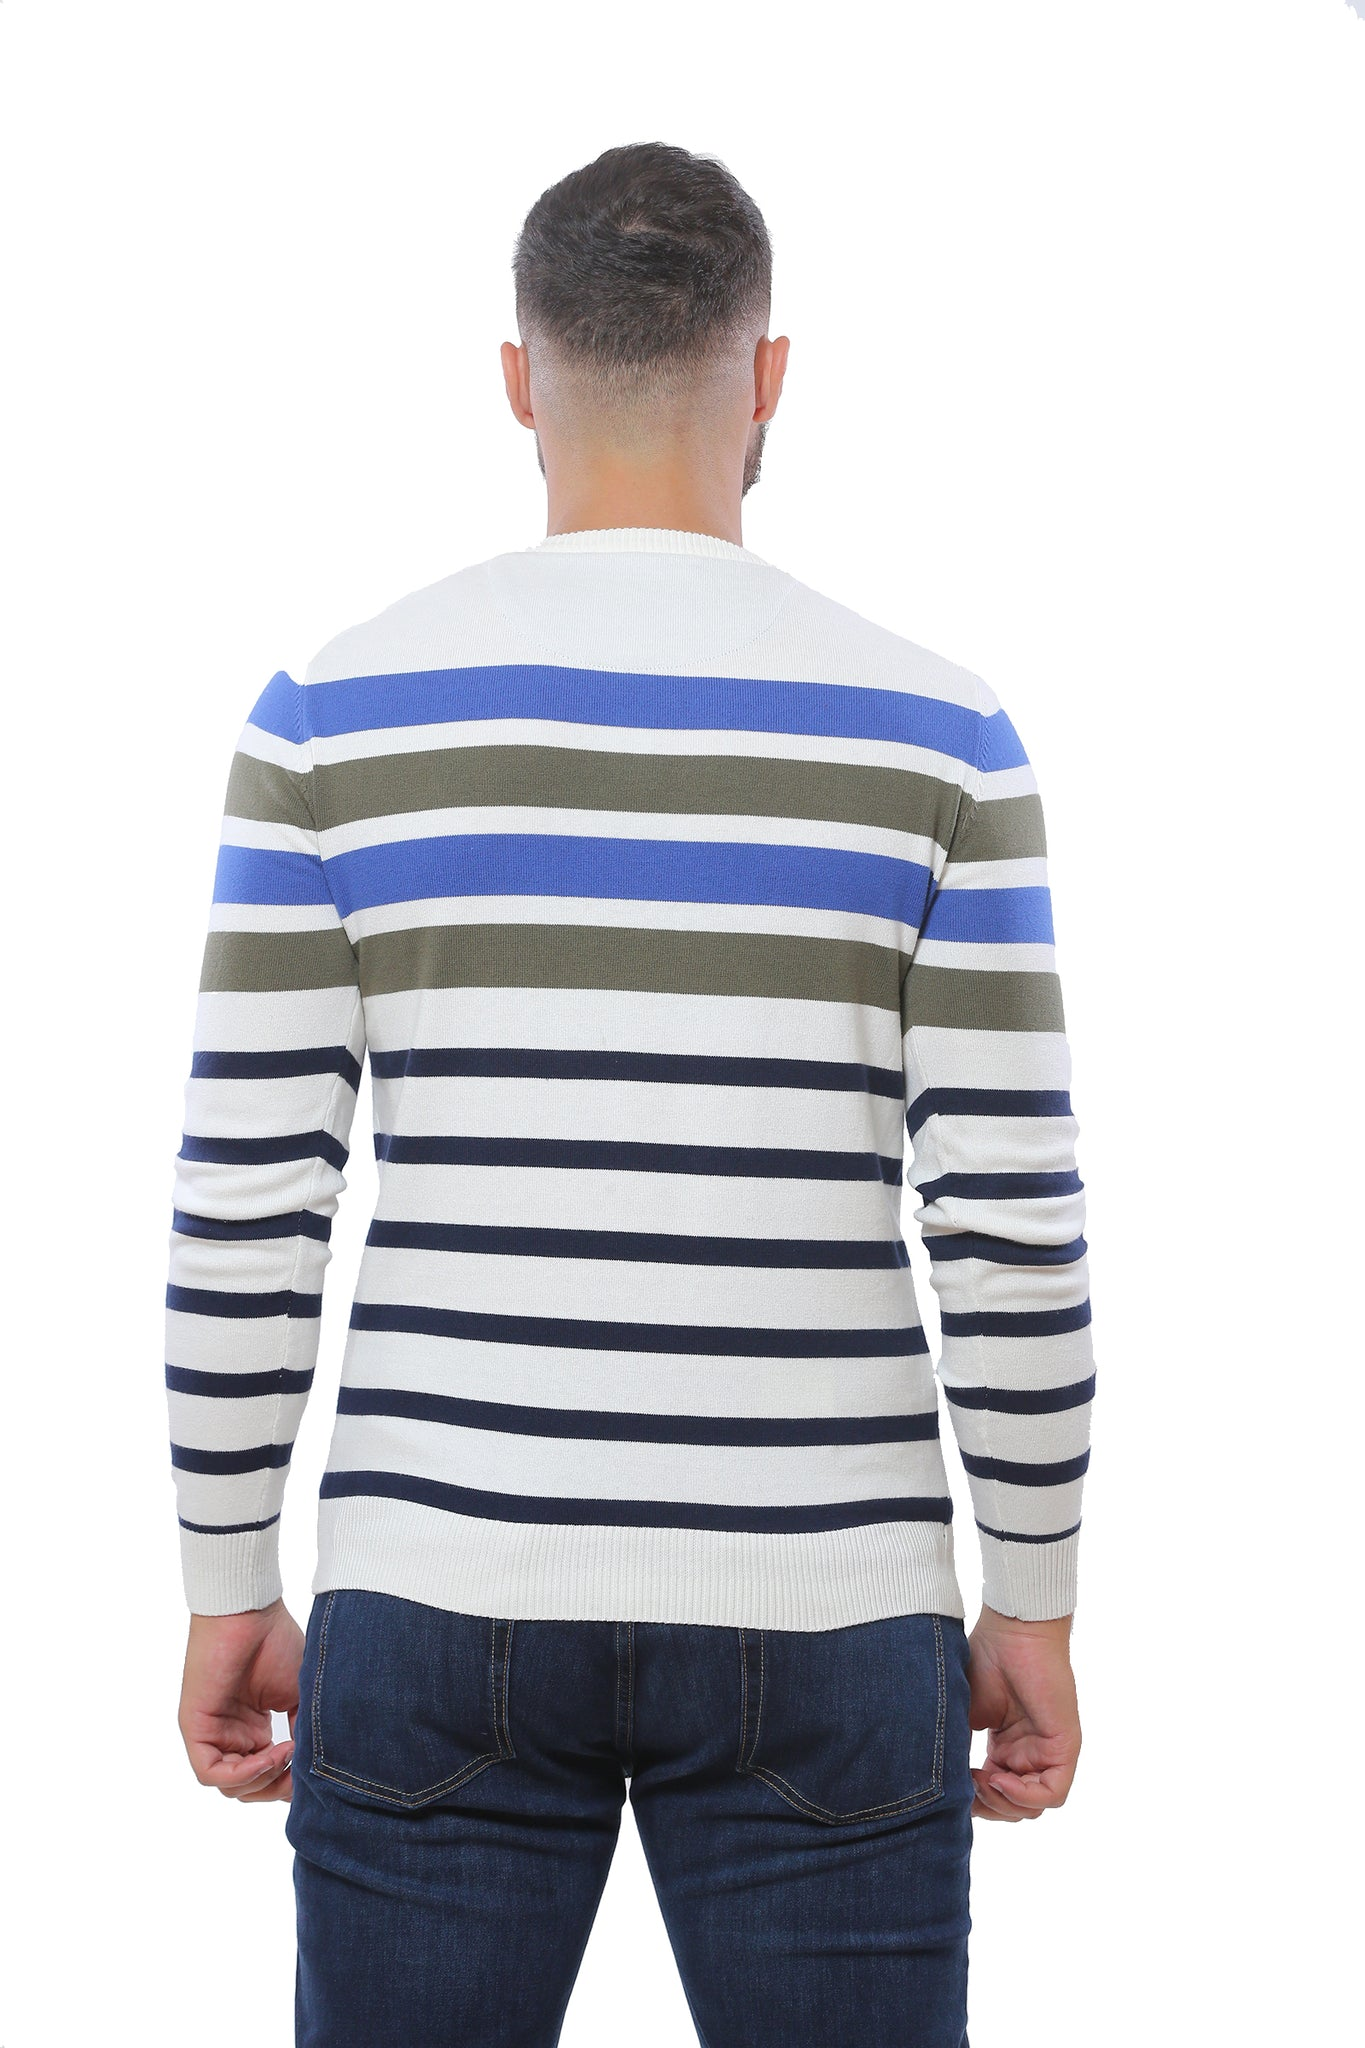 Sweater with Stripes | White with Green and Blue